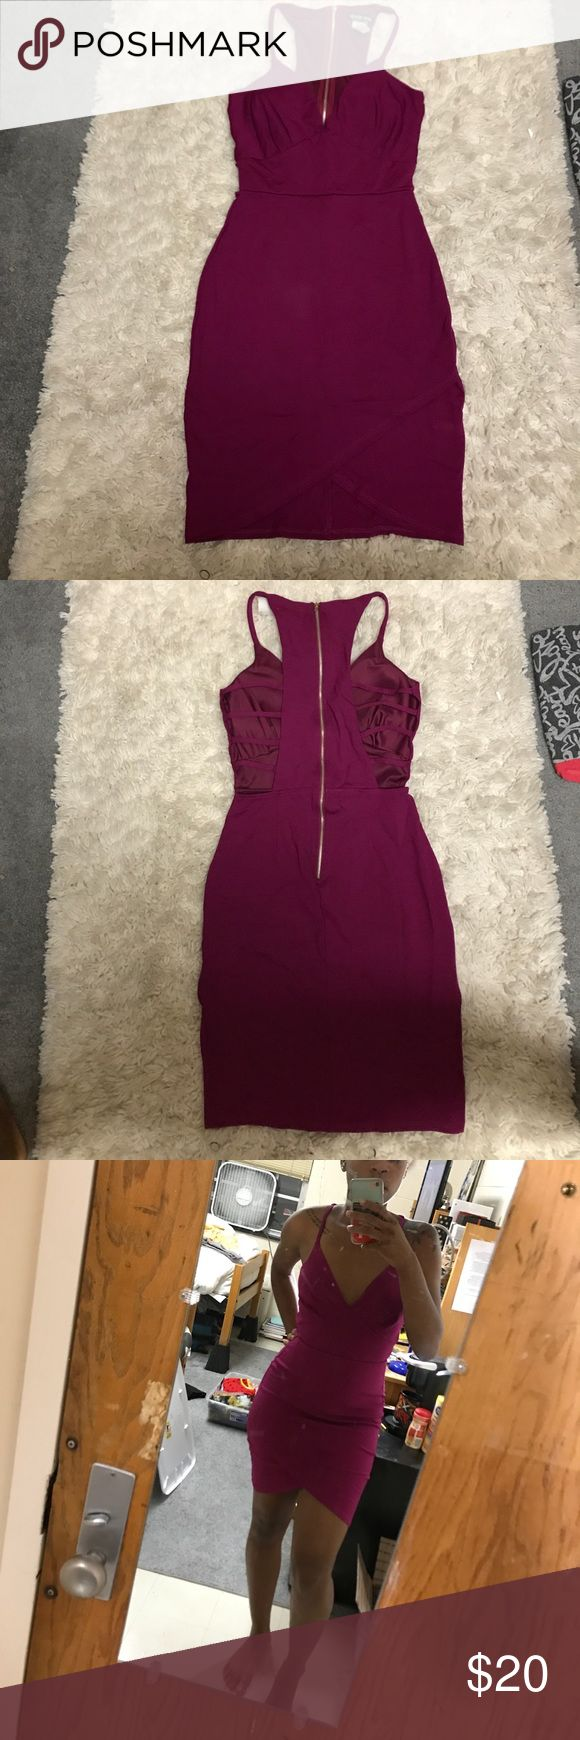 Fashionnova Gonna Get You Dress Magenta bodycon dress with a strappy back and tulip skirt. Fashion Nova Dresses Mini